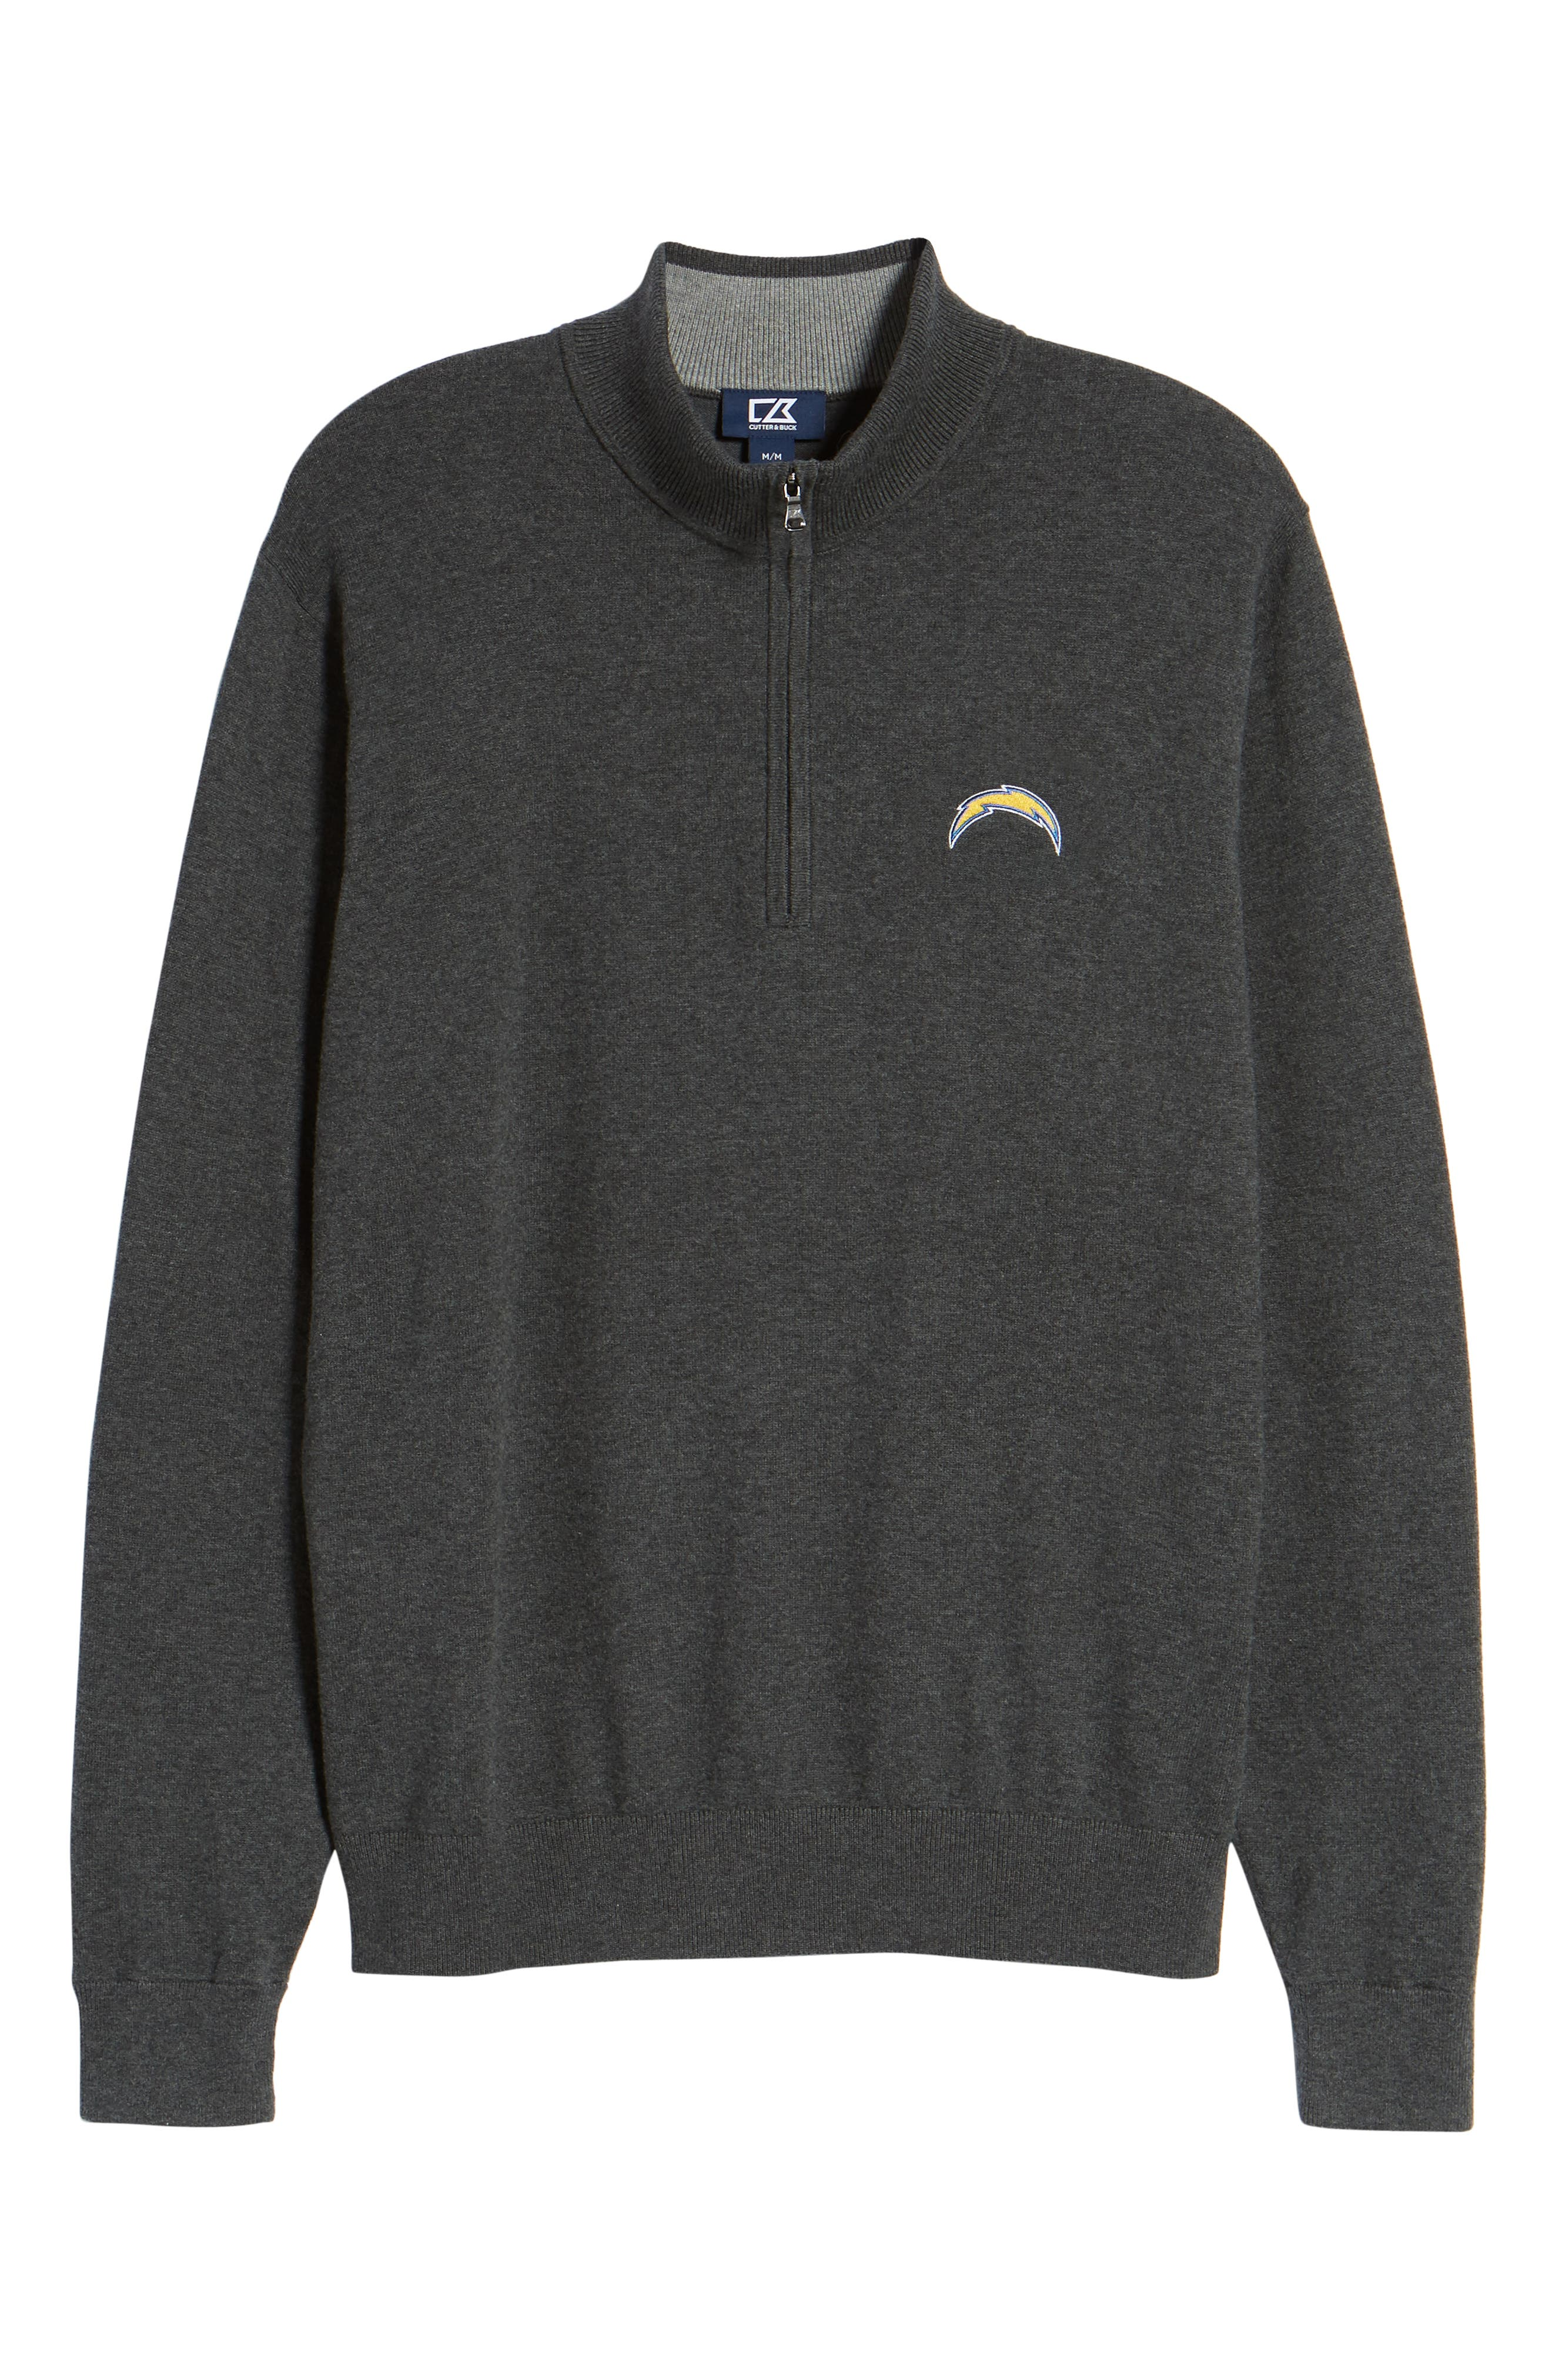 Los Angeles Chargers - Lakemont Regular Fit Quarter Zip Sweater,                             Alternate thumbnail 6, color,                             CHARCOAL HEATHER